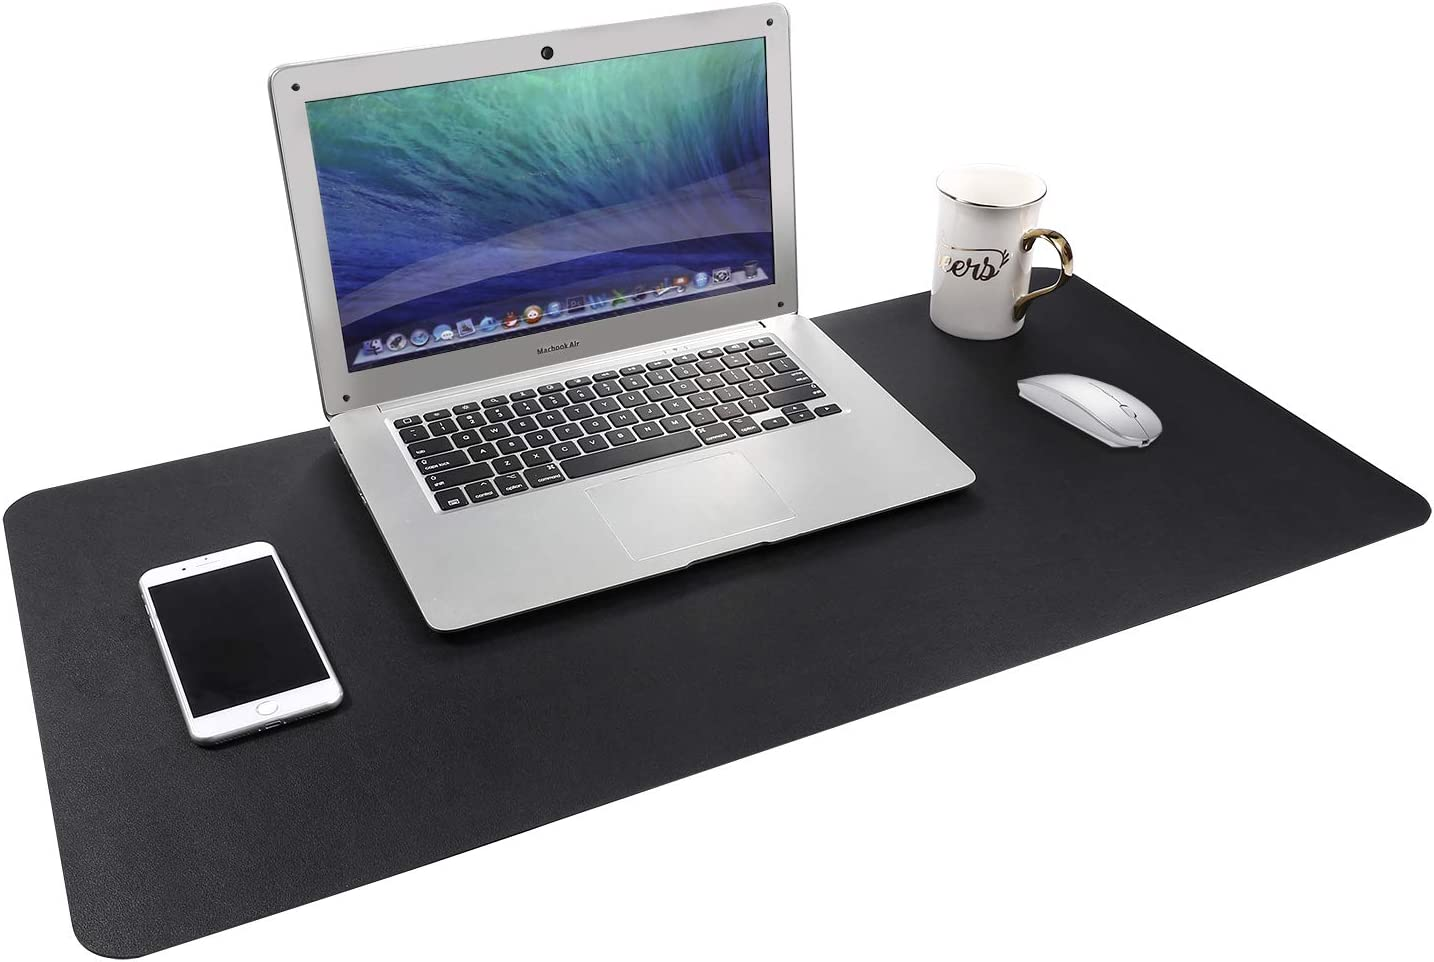 "Gogloo Multifunctional Office Desk Pad, Dual Sided PU Leather Mouse Pad, Thin and Waterproof Desk Blotter Protector, Desk Writing Mat for Office/Home (Black, 31.5"" x 15.7"")"